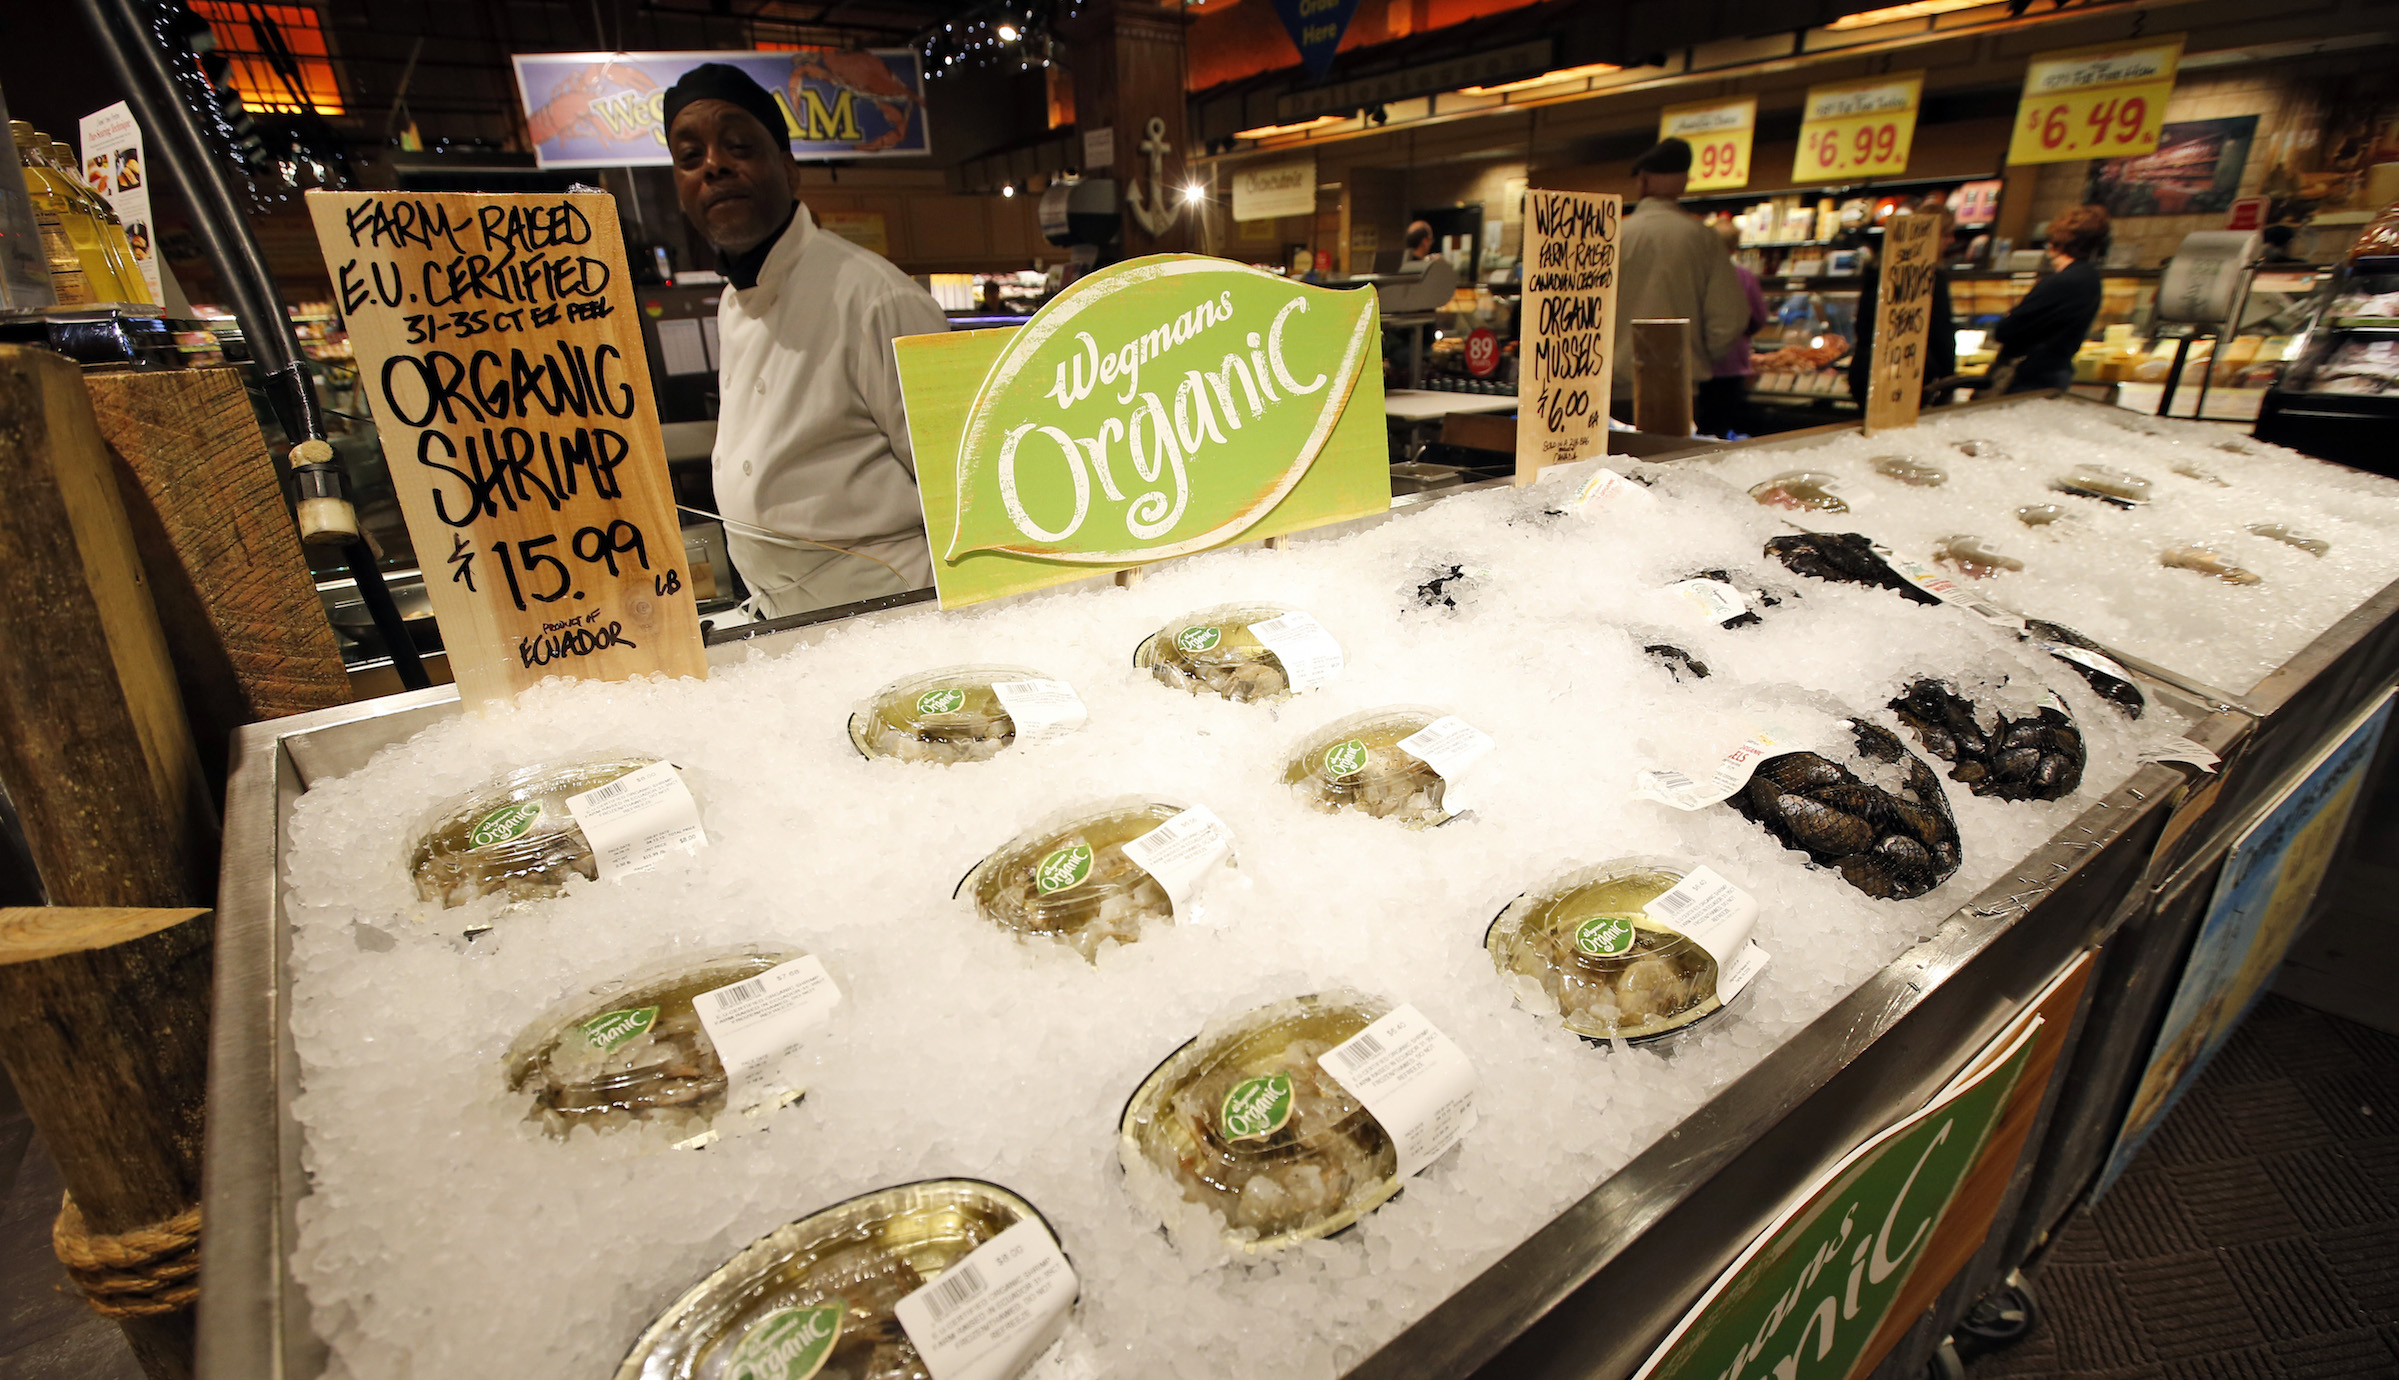 EU certified organic farm-raised shrimp and Canadian certified organic mussels are for sale on at the Wegmans, Friday, April 10, 2015 in Fairfax, Va. Organic fish is certified in the EU and Canada because the US doesn't have any standard. (AP Photo/Alex Brandon)